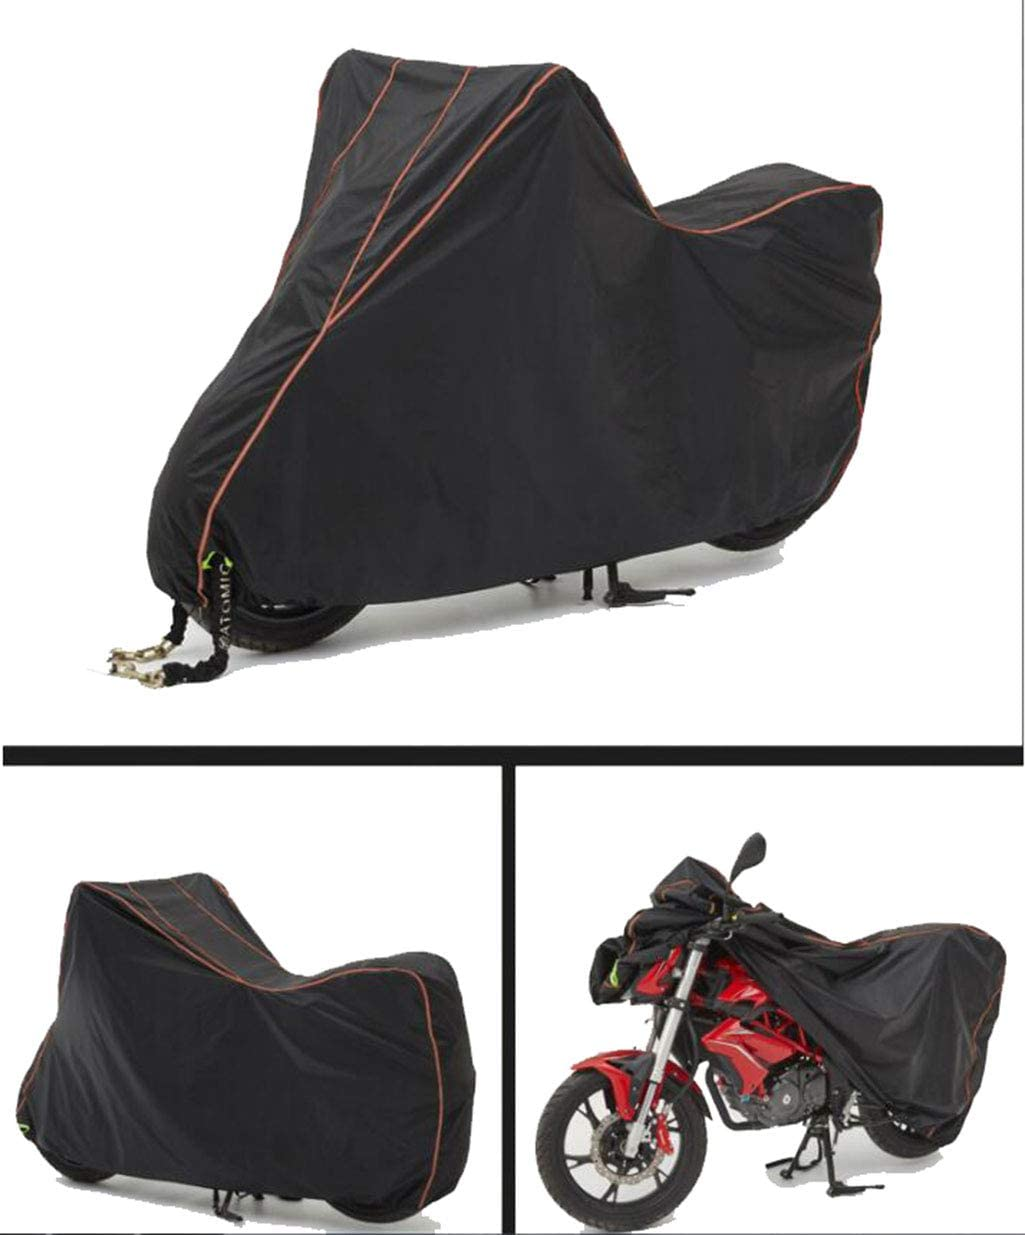 Yamaha MT-09 Tracer Oxford Motorcycle Cover Breathable Water Resistant Black